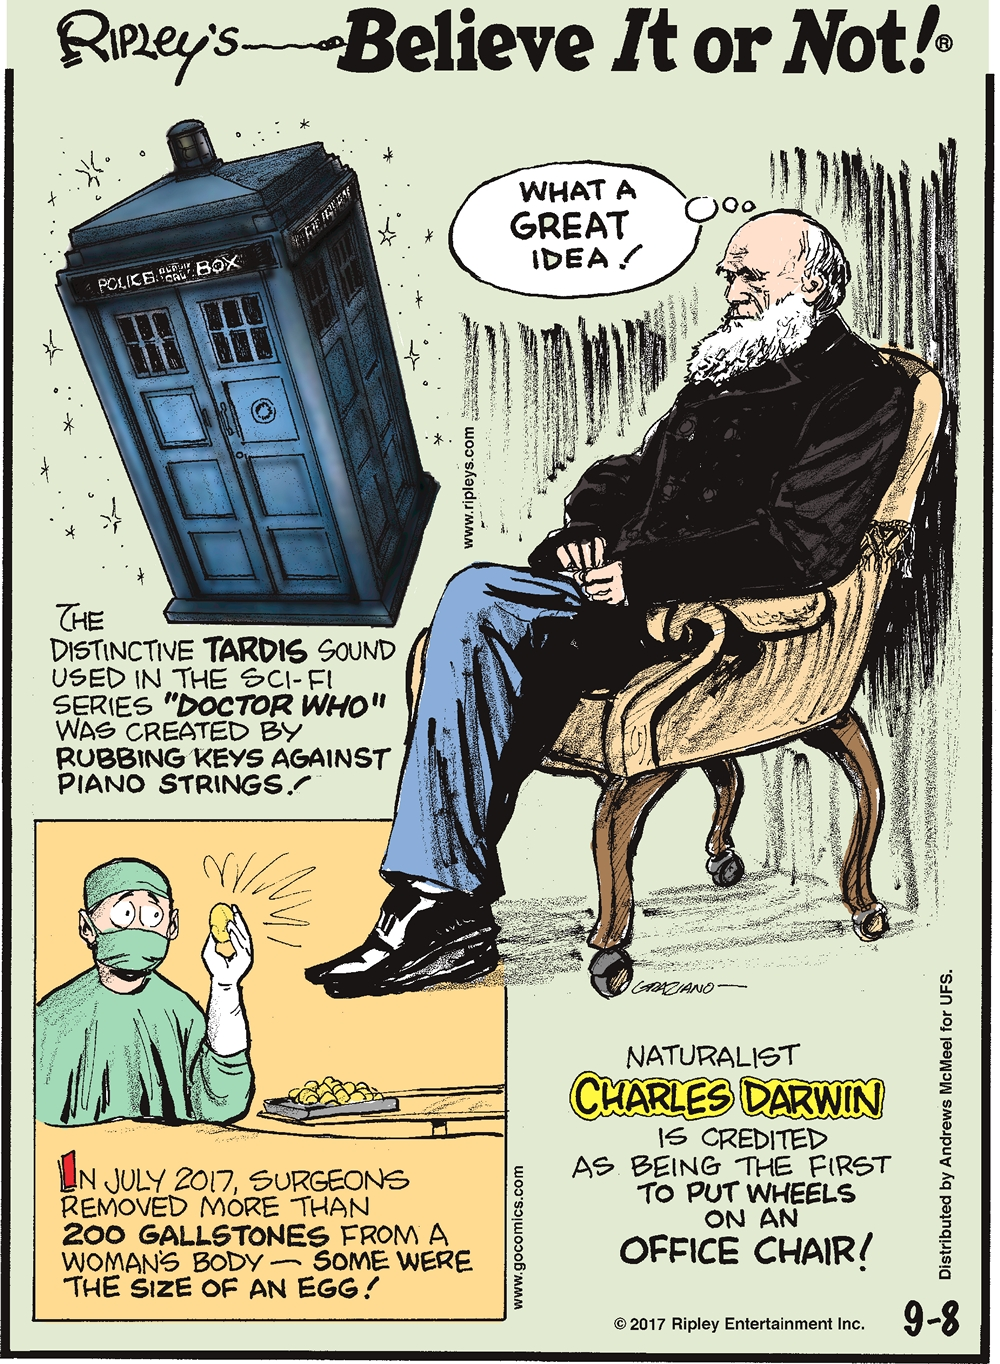 """The distinctive TARDIS sound used in the sci-fi series """"Doctor Who"""" was created by rubbing keys against piano strings!-------------------- In July 2017, surgeons removed more than 200 gallstones from a woman's body- some were the size of an egg!--------------------- Naturalist Charles Darwin is credited as being the first to put wheels on an office chair!"""